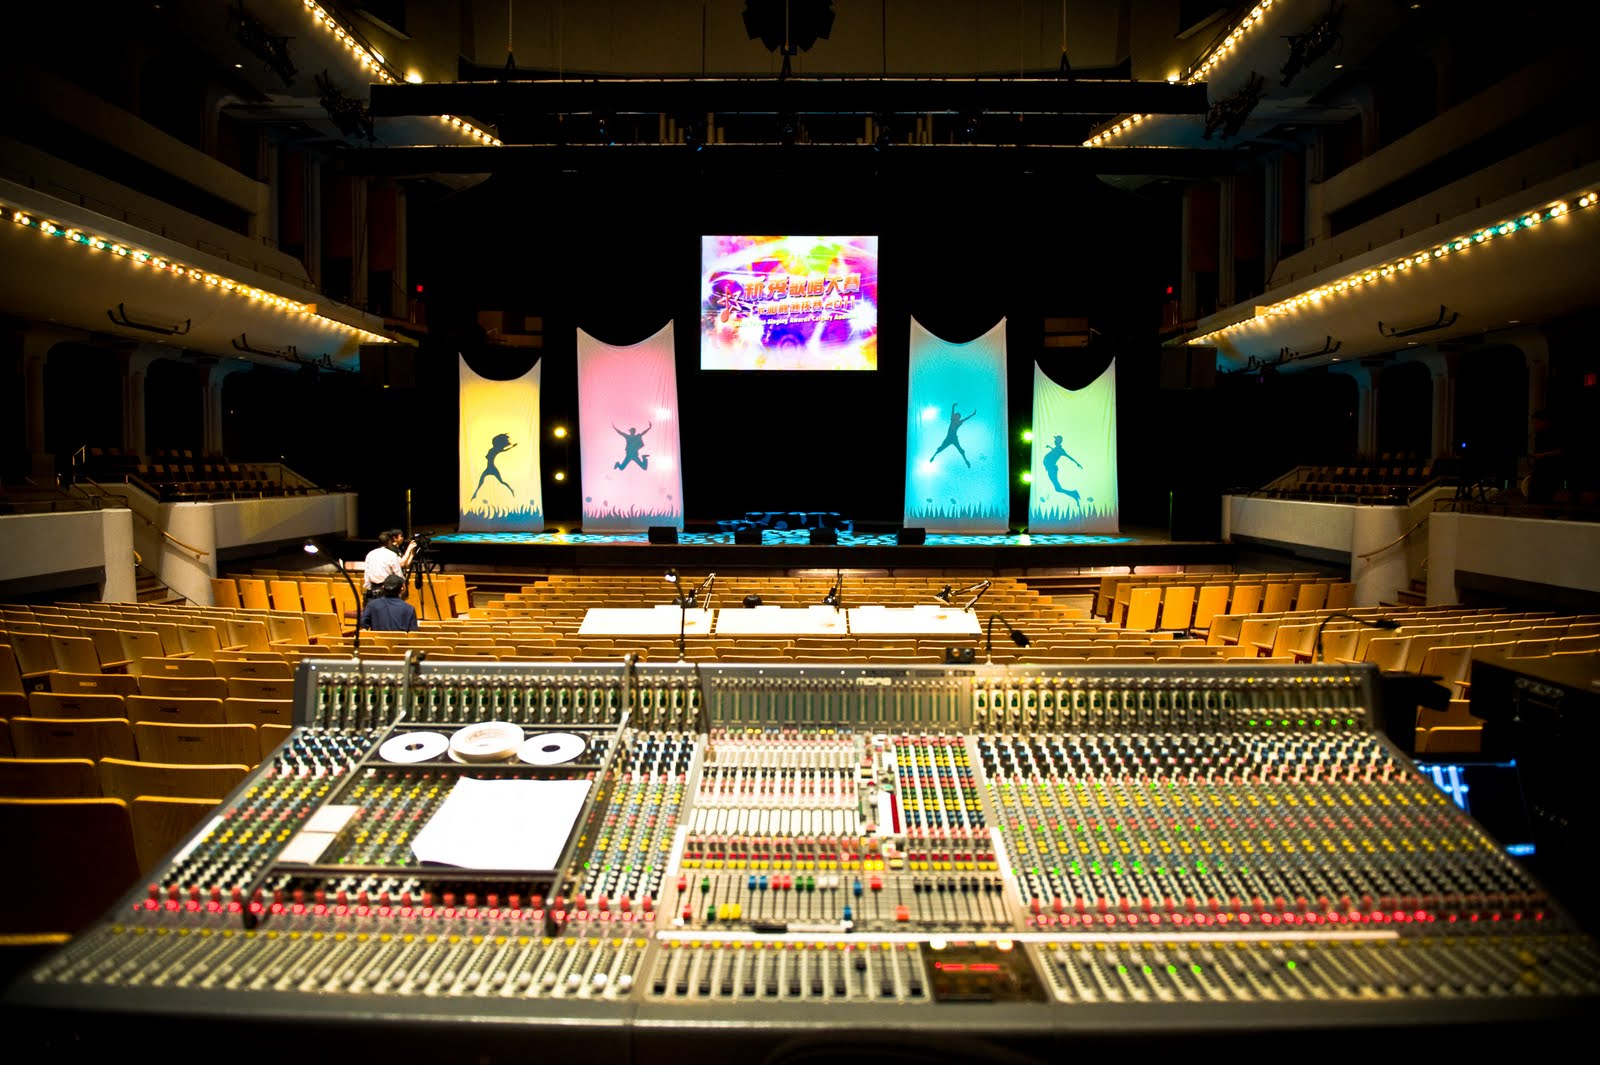 Concert Stage Design Ideas 1000 ideas about concert stage design on pinterest exhibitions exhibition stall and behance You Might Also Like